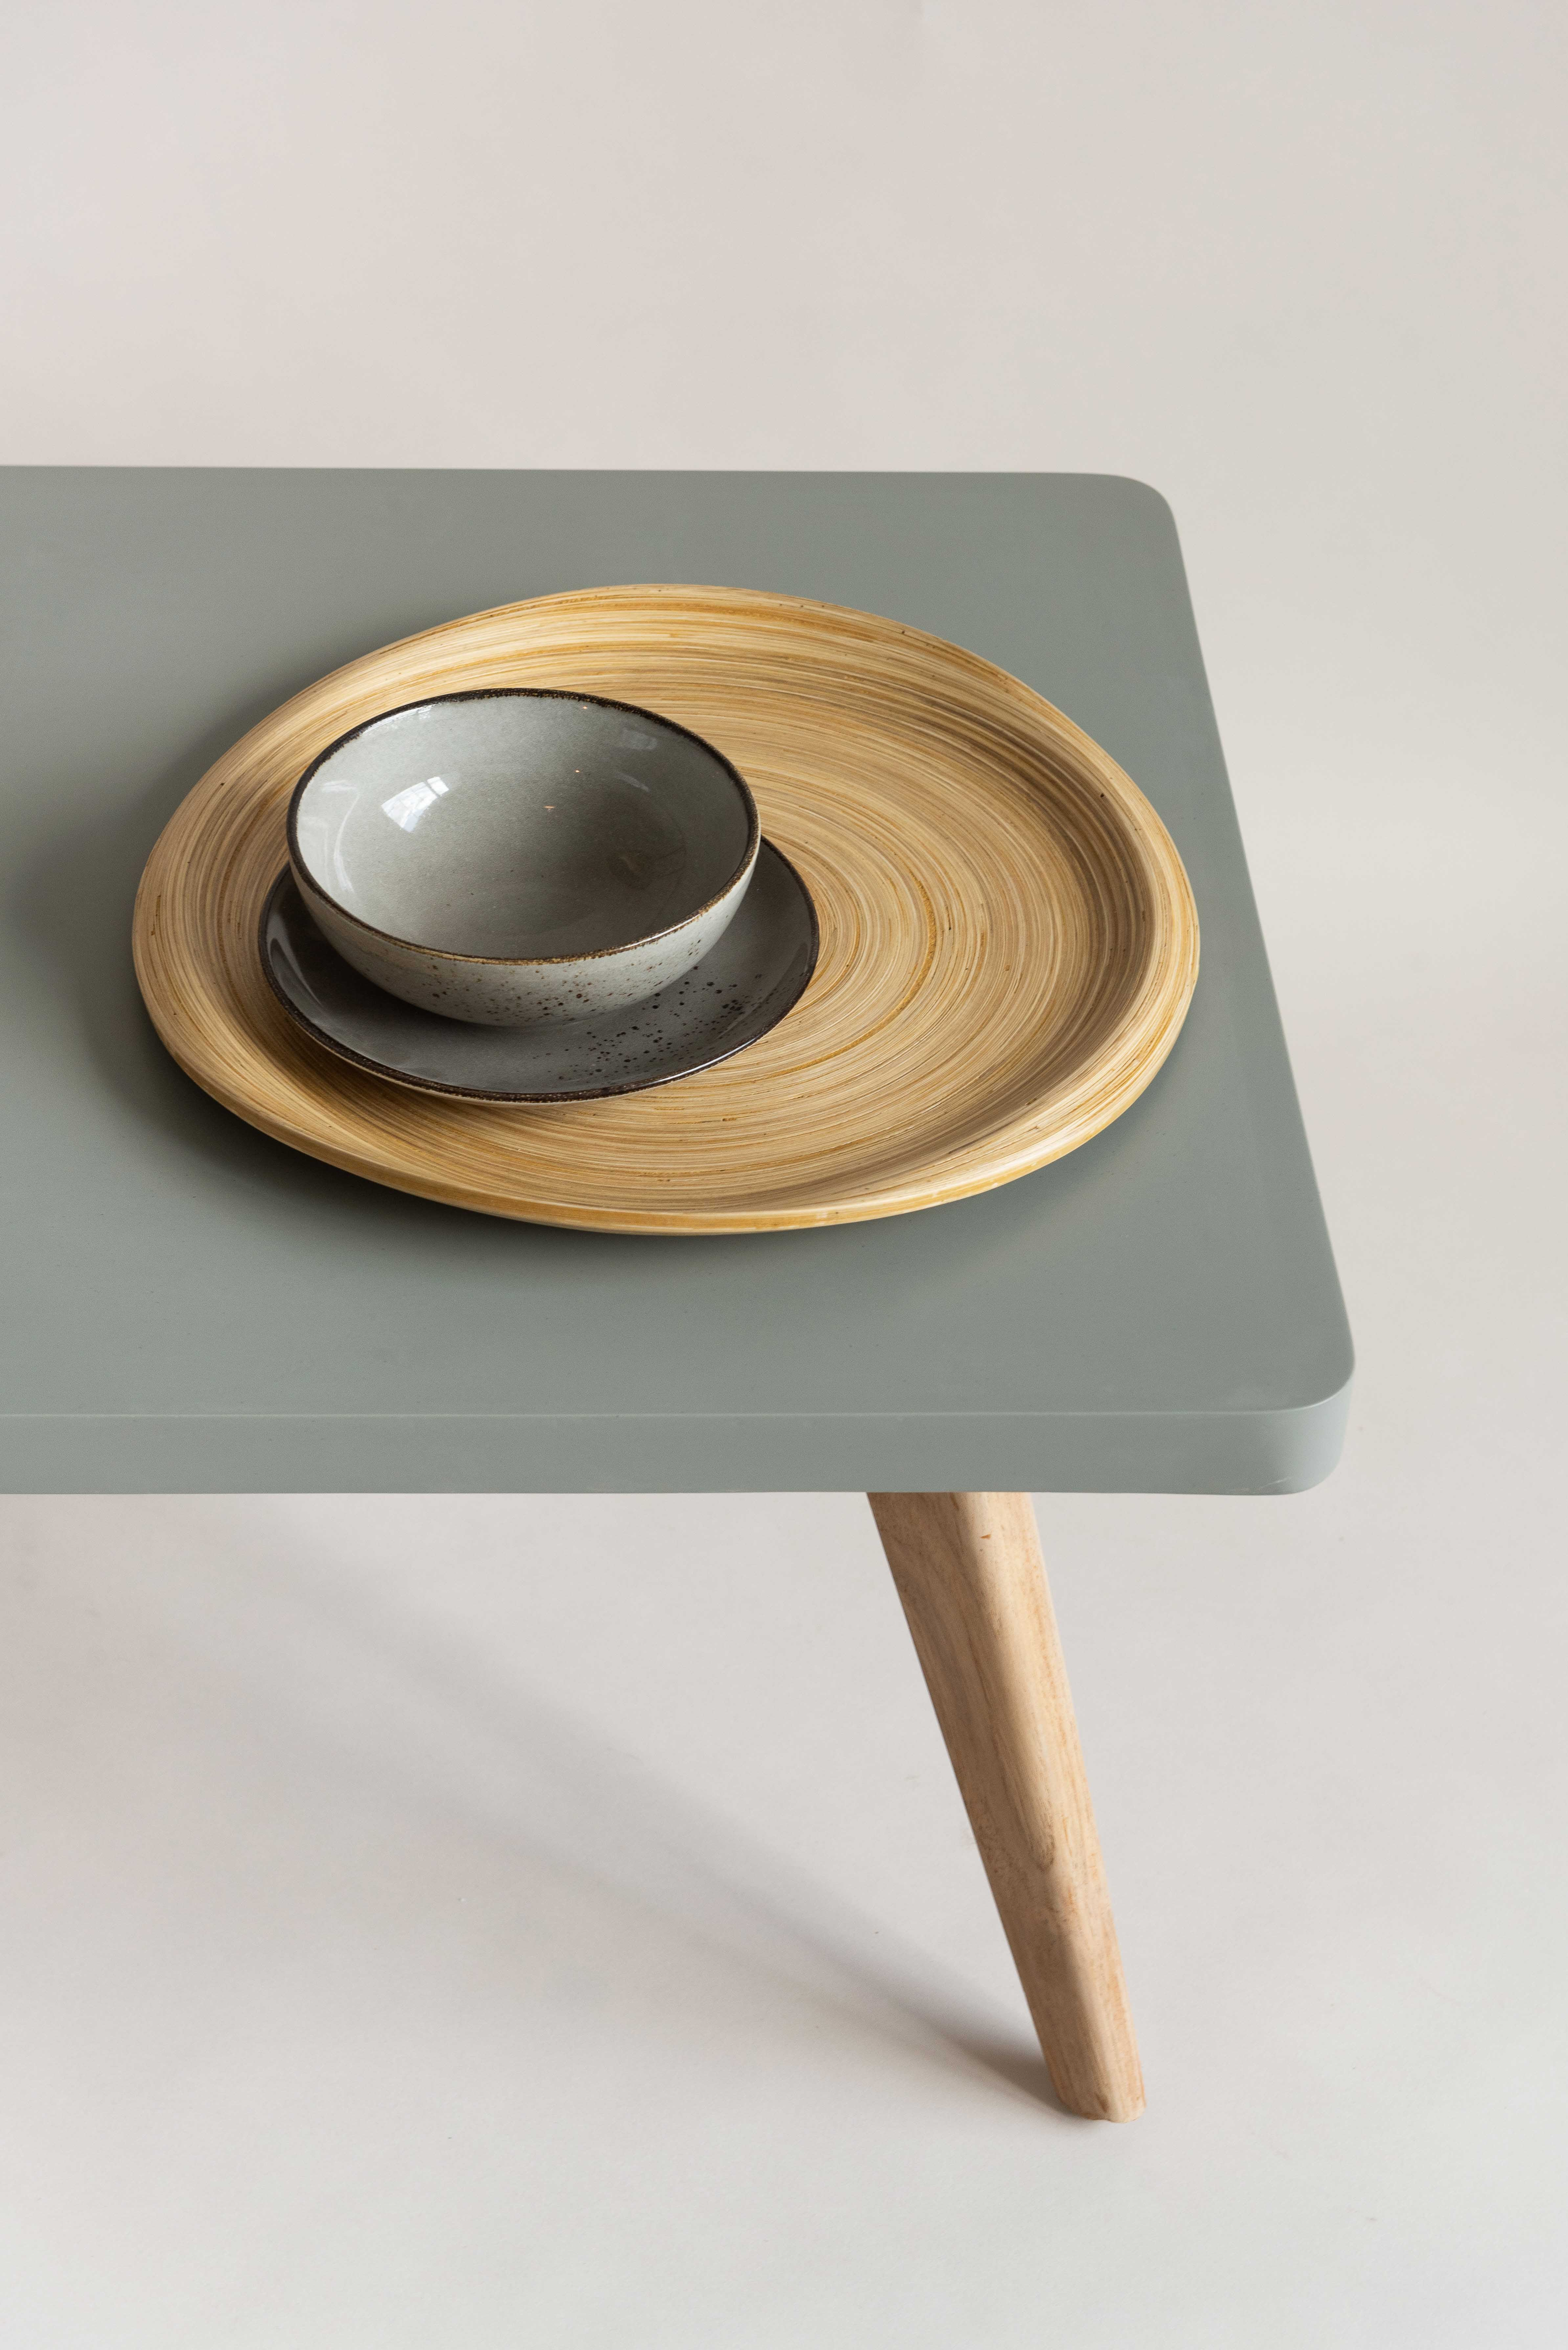 Furnish for the Future: Home and Soul Furniture Moving Towards a More Sustainable Living…